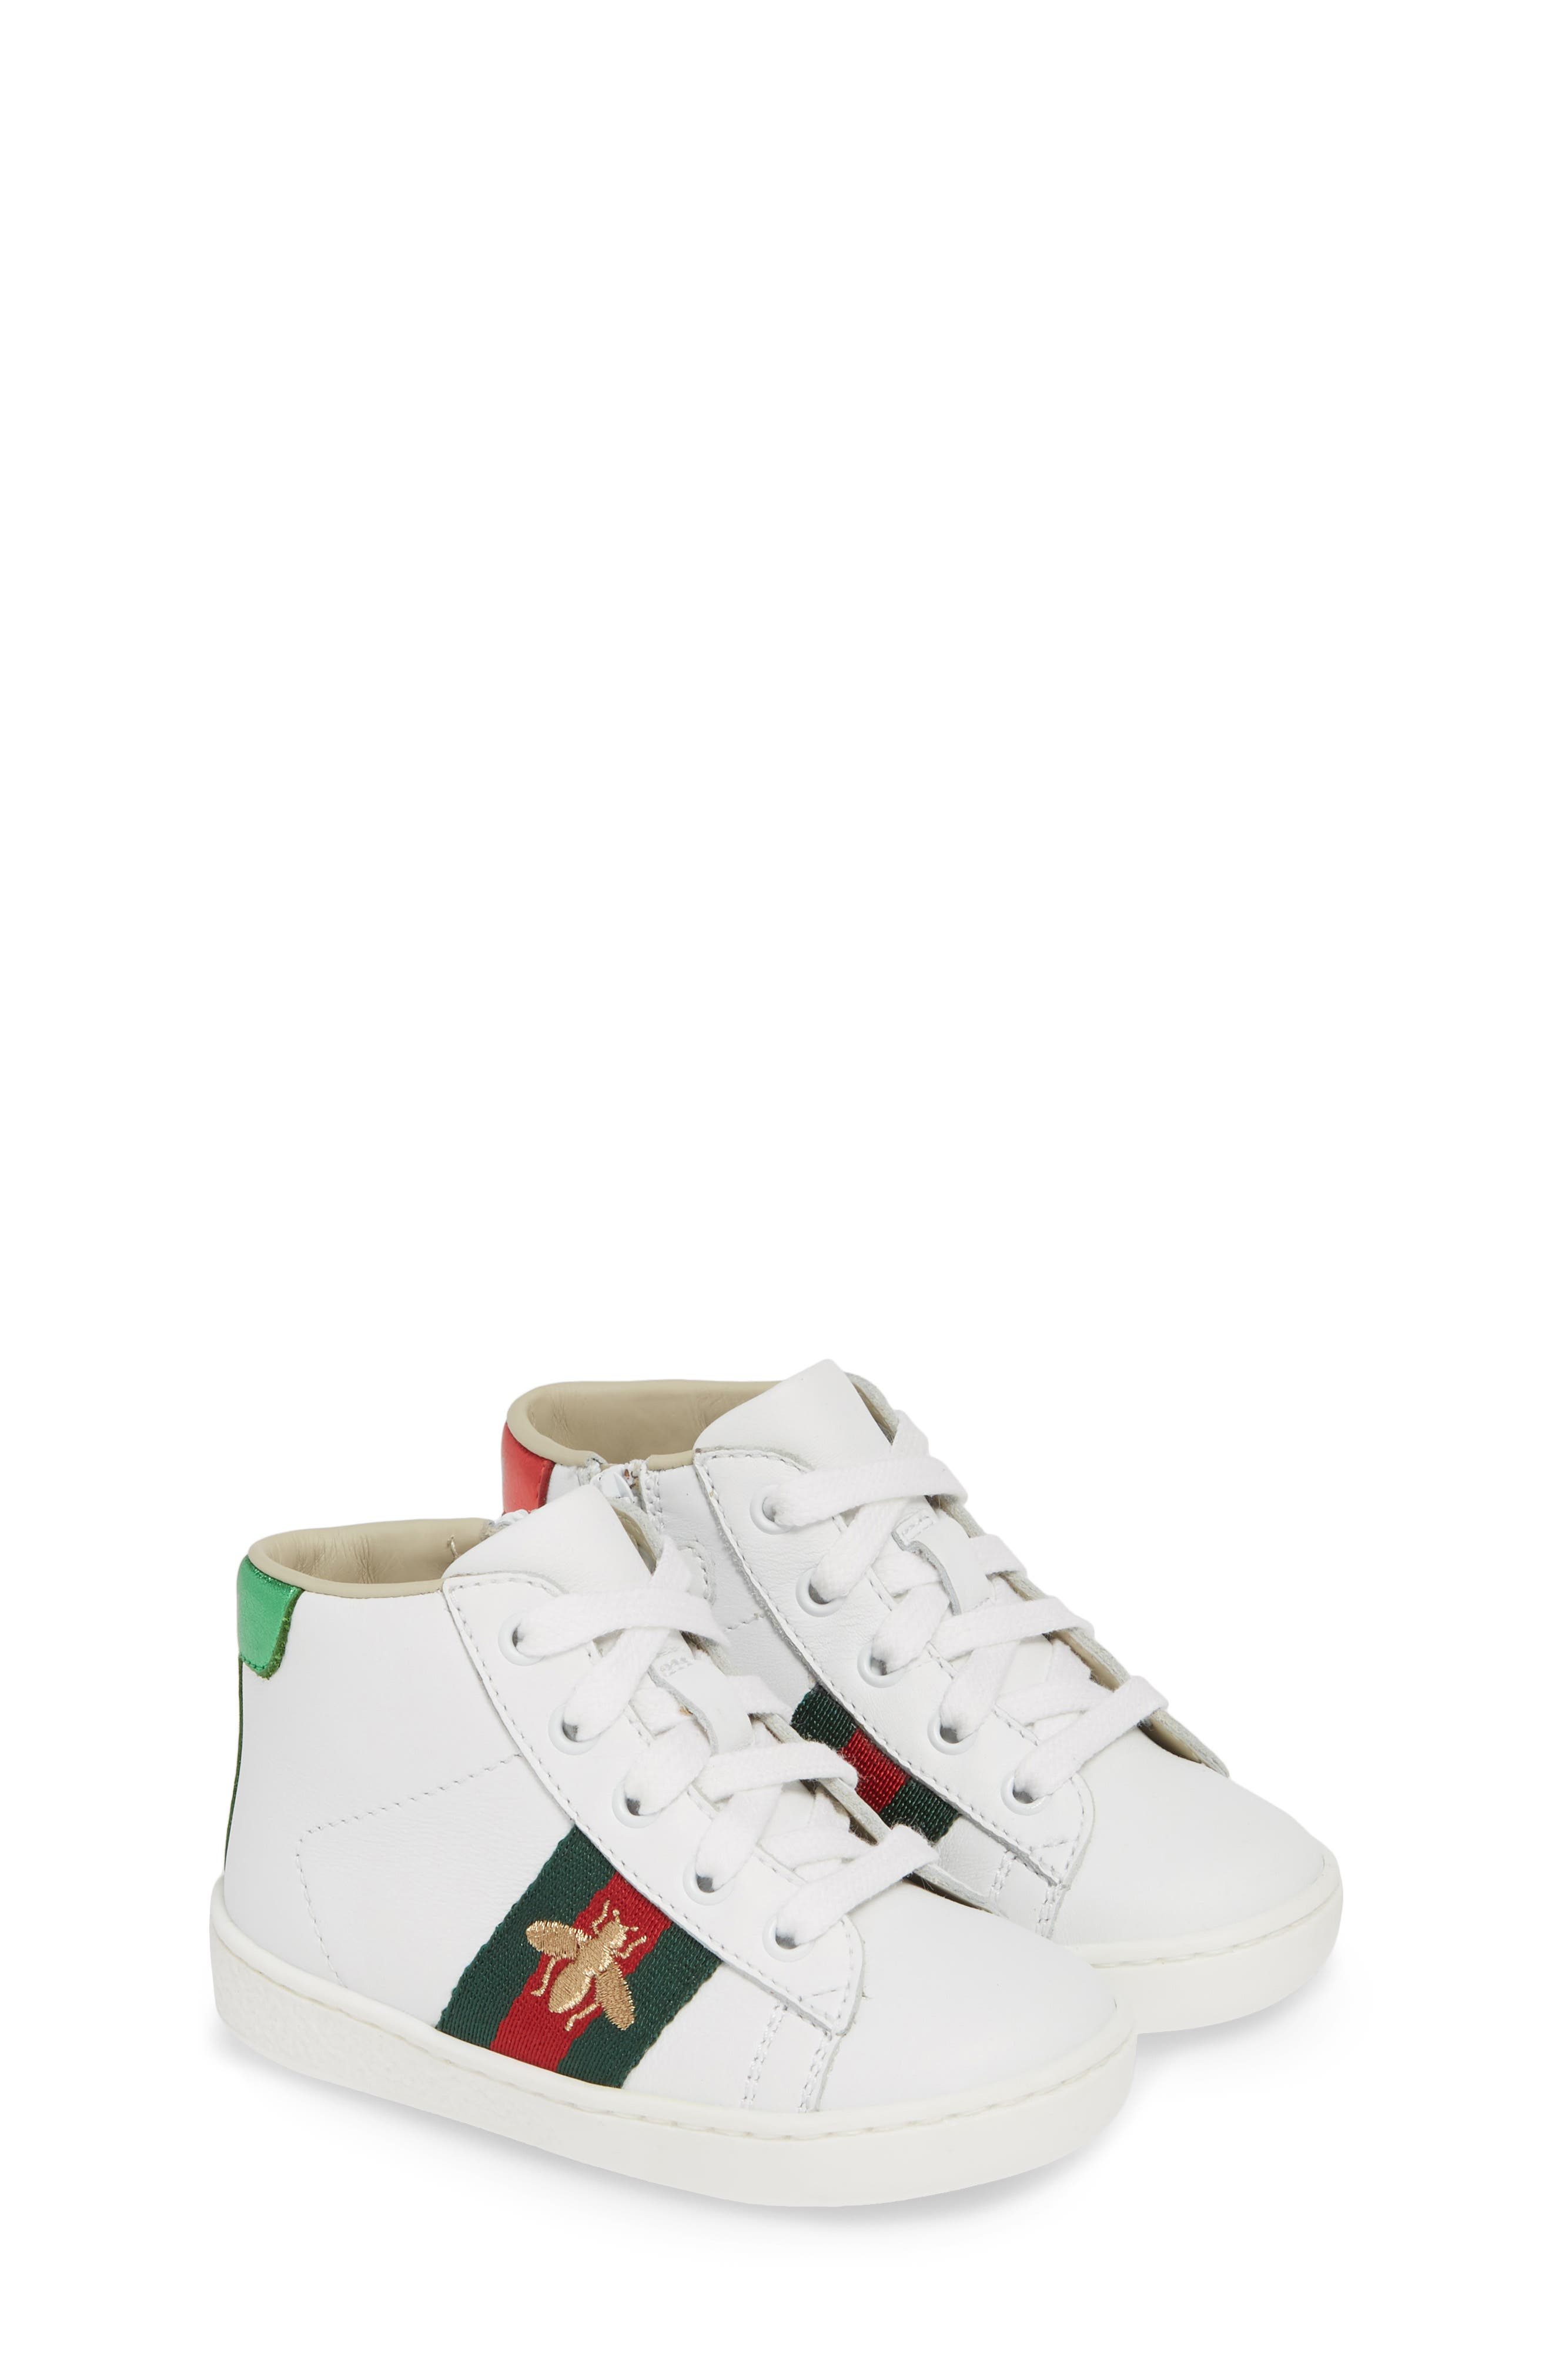 GUCCI, New Ace High Top Sneaker, Alternate thumbnail 2, color, WHITE MULTI